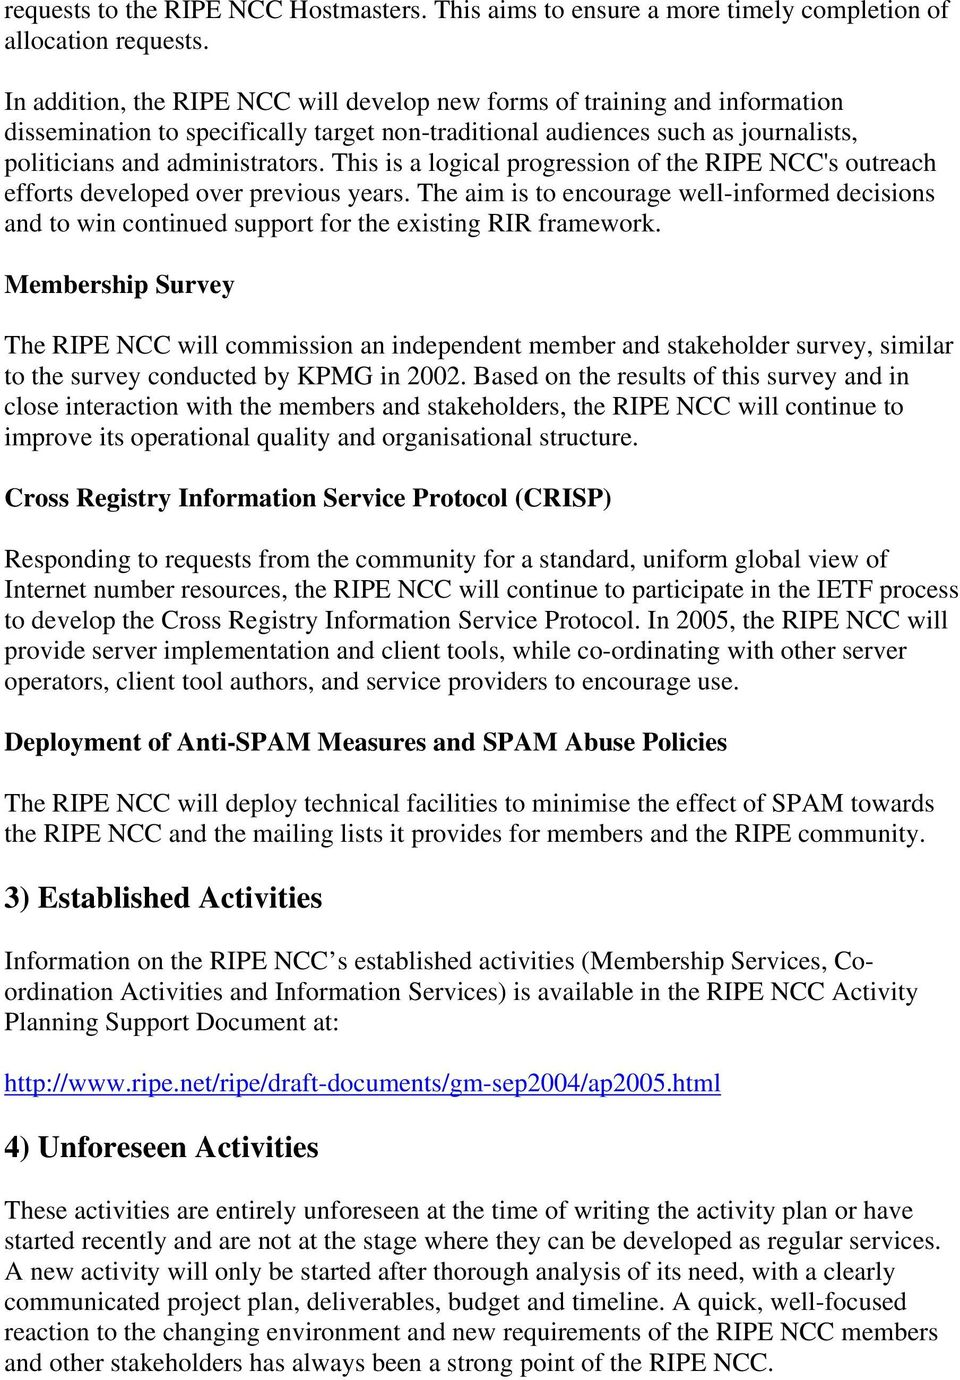 This is a logical progression of the RIPE NCC's outreach efforts developed over previous years.